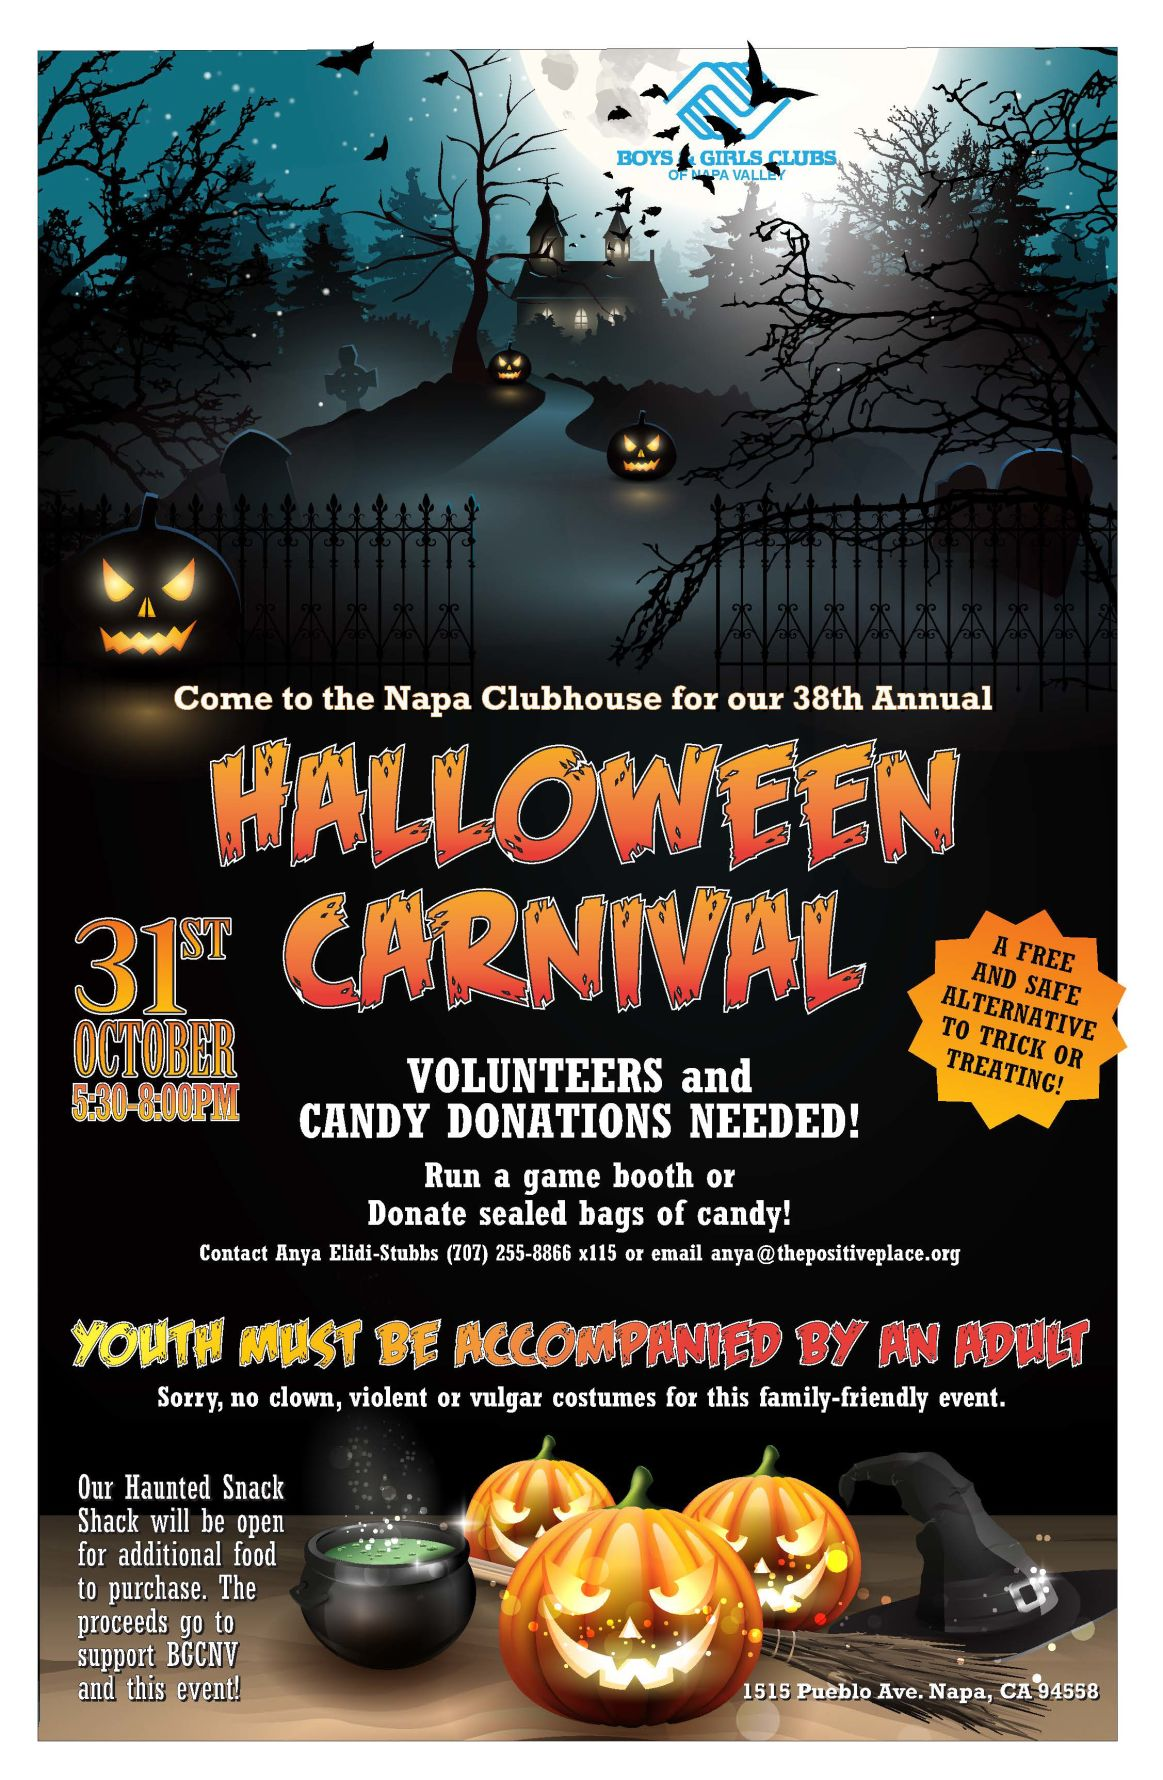 Boys & Girls Clubs of Napa Valley Halloween Carnival